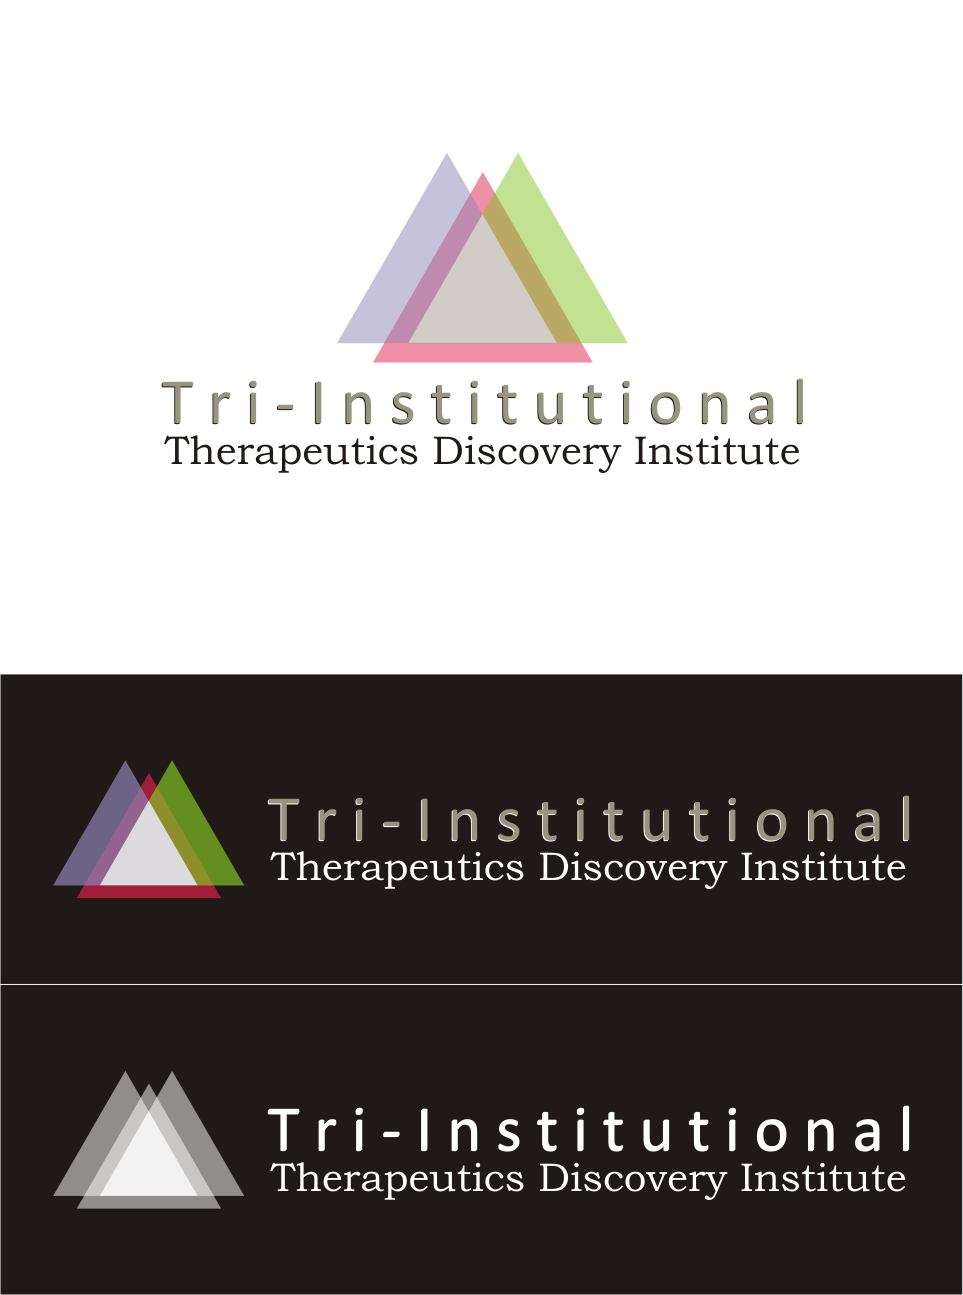 Logo Design by Nthus Nthis - Entry No. 119 in the Logo Design Contest Inspiring Logo Design for Tri-Institutional Therapeutics Discovery Institute.